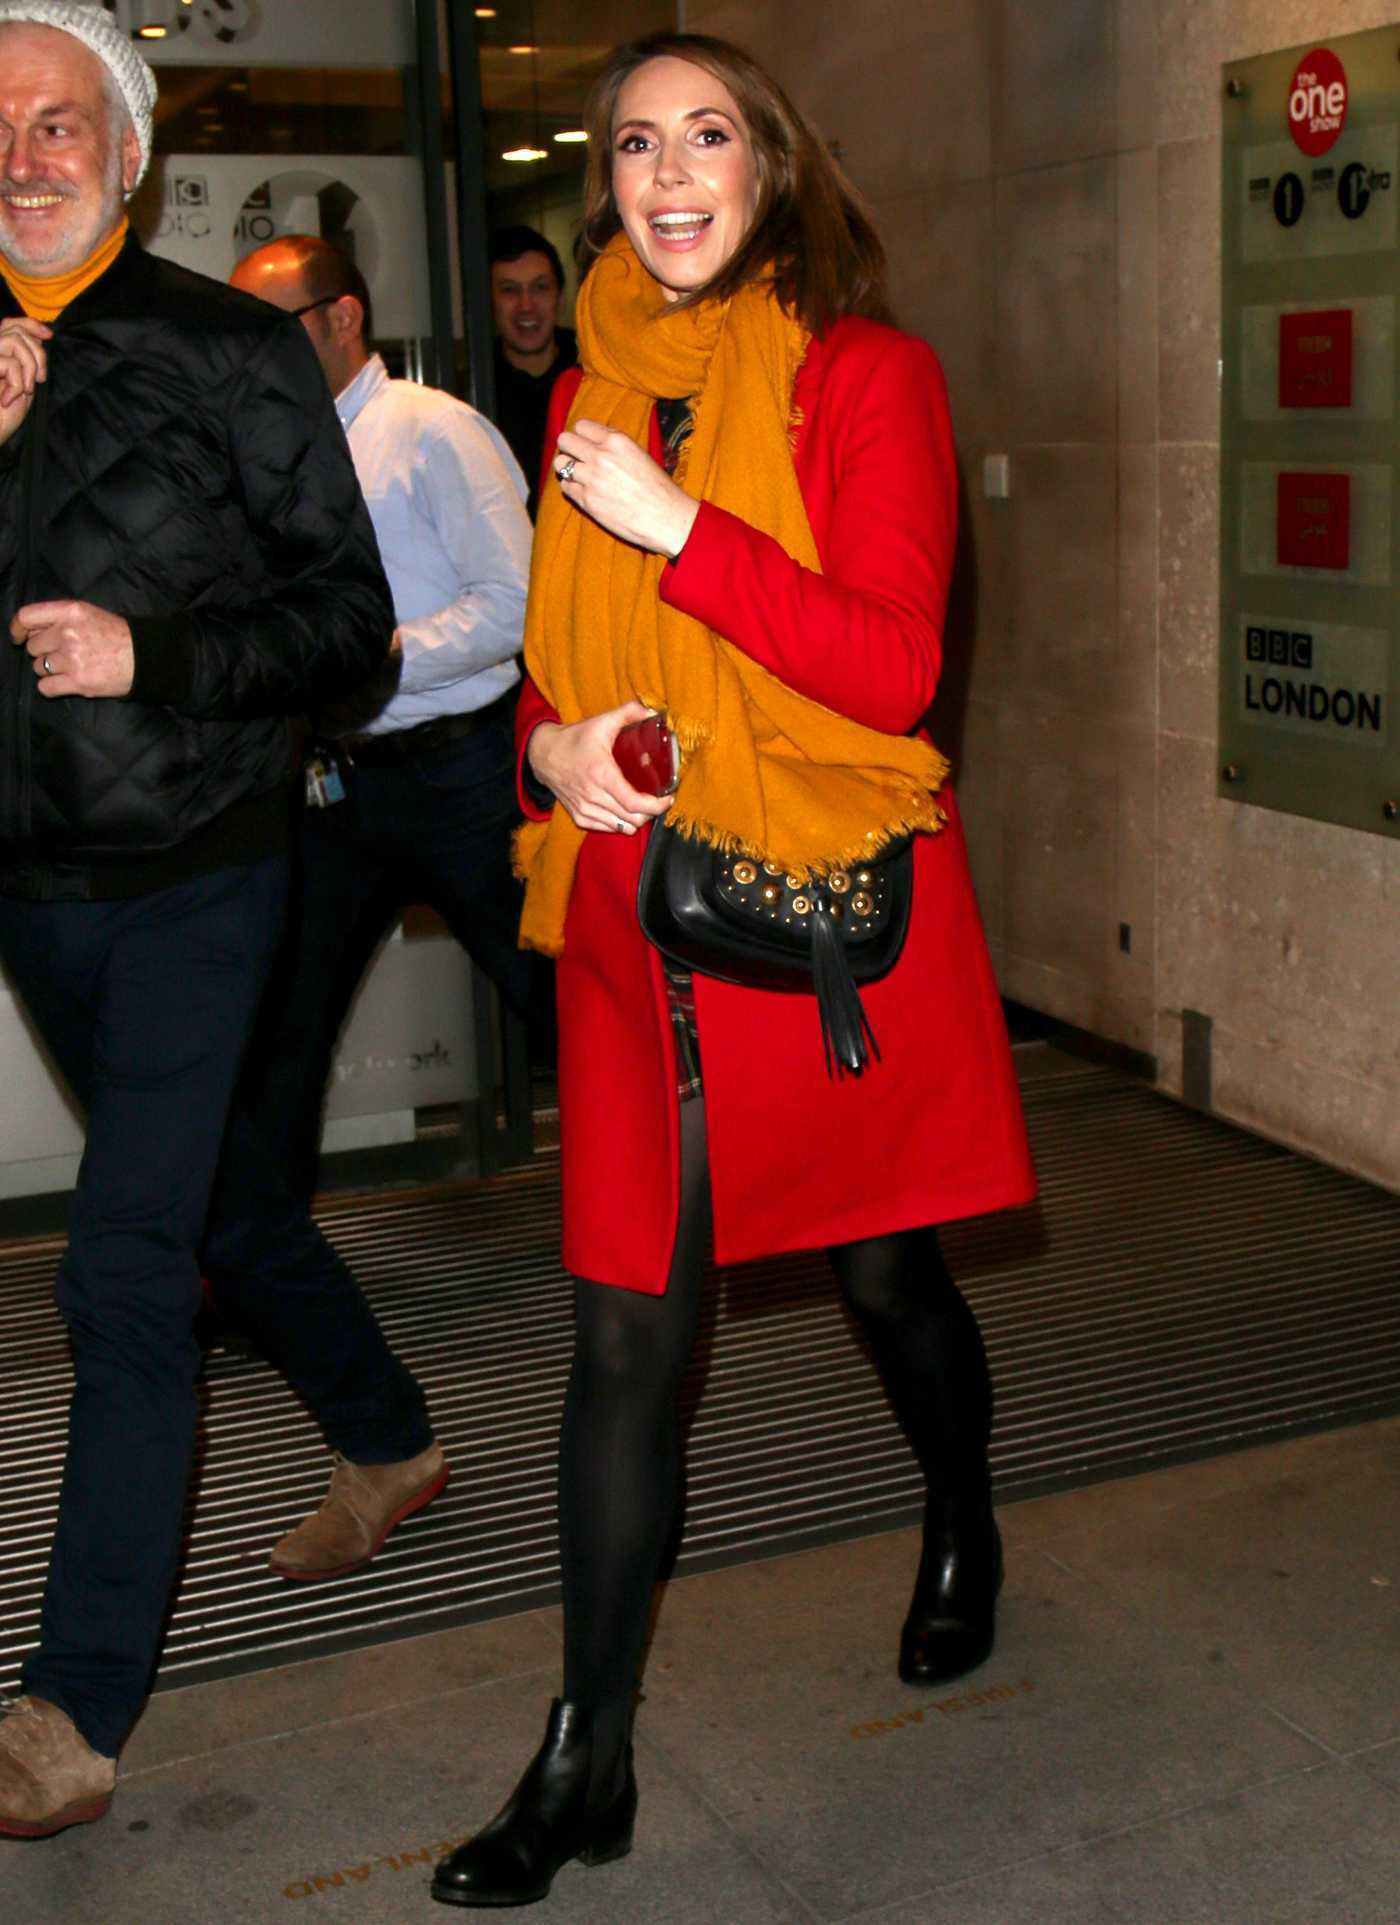 Alex Jones in a Red Coat Arrives at The One Show in London 01/17/2019